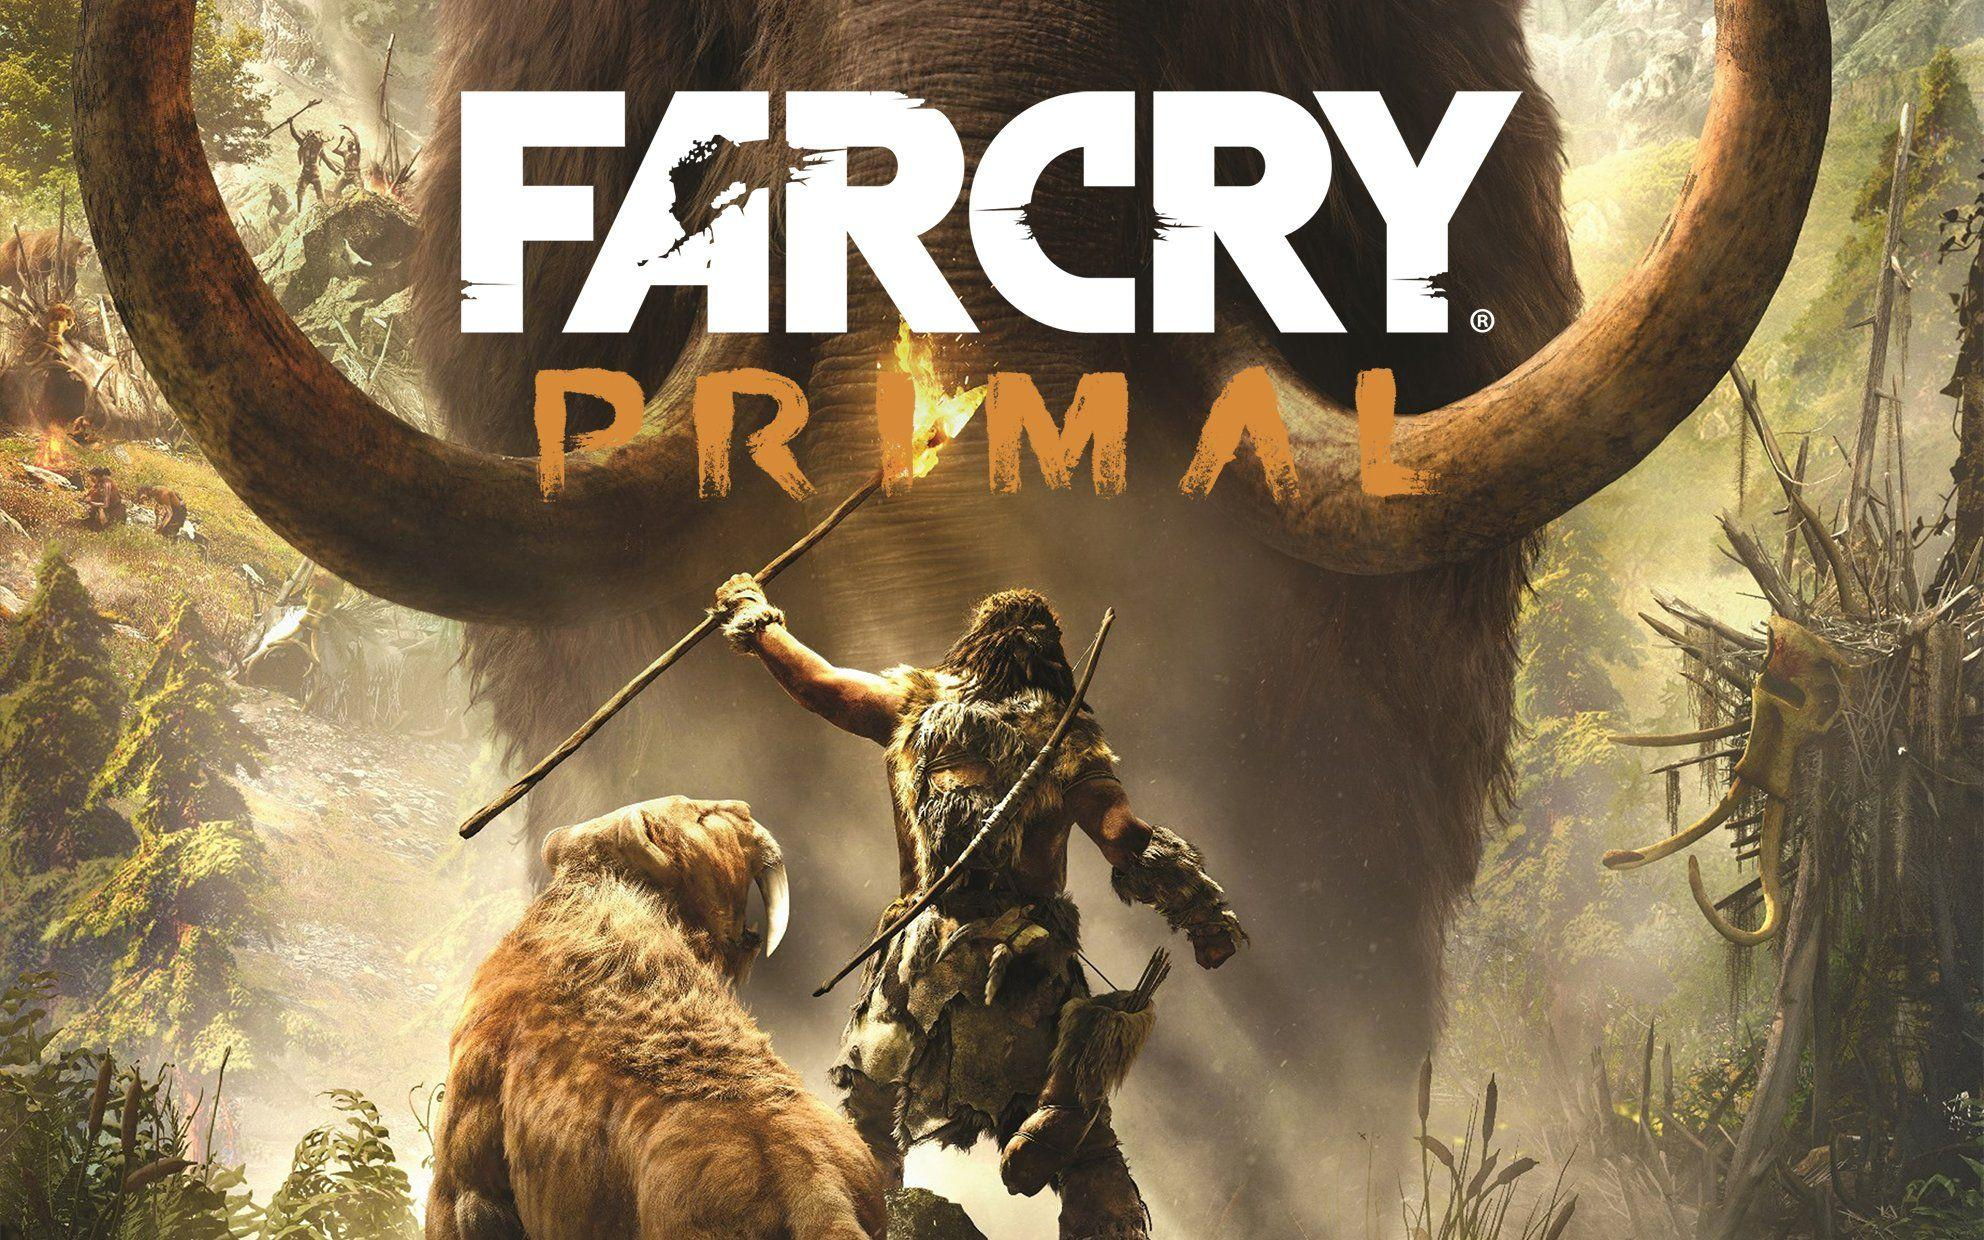 Far Cry Primal Artwork Video Games Wallpapers Hd: Far Cry Primal Wallpapers